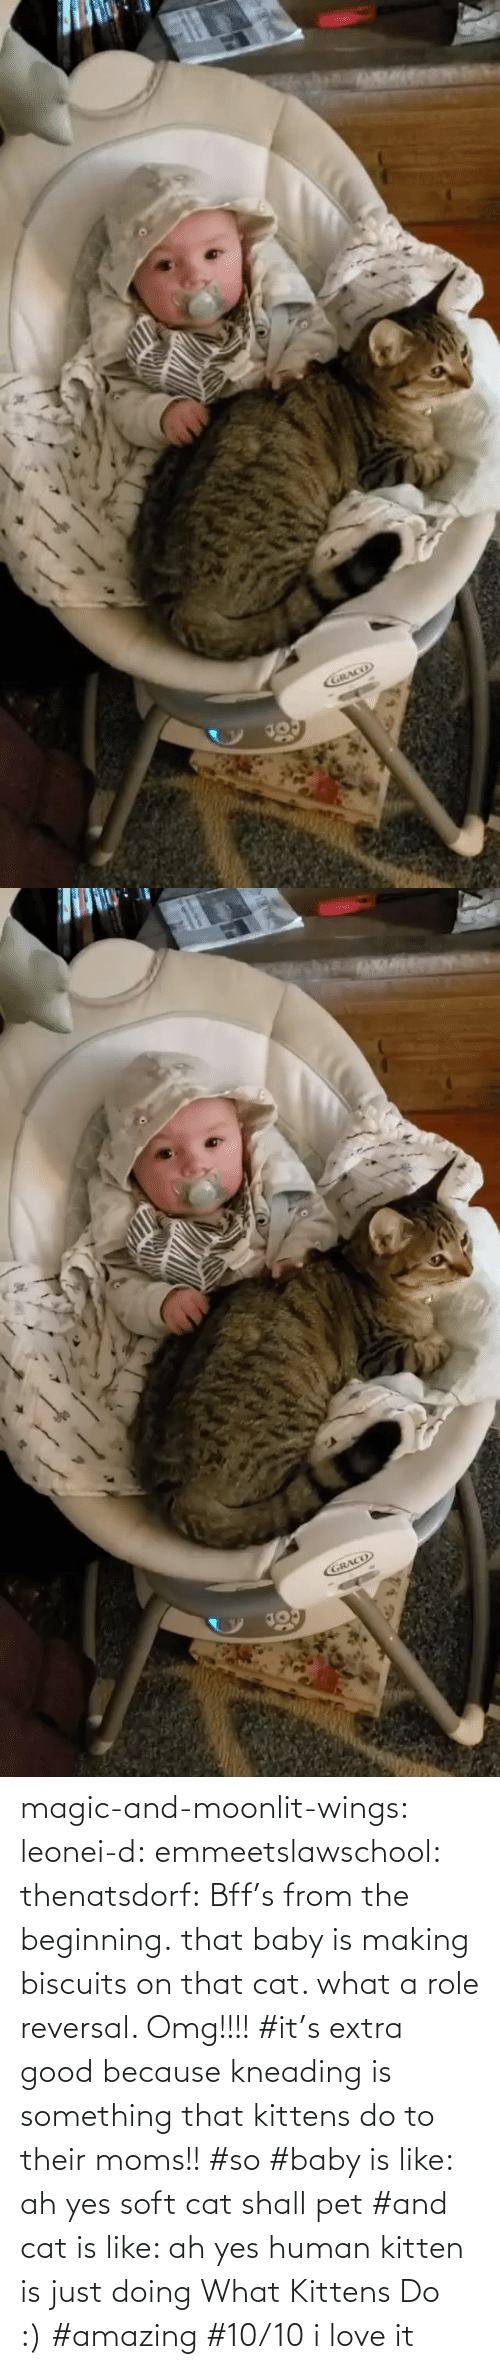 10 10: magic-and-moonlit-wings: leonei-d:  emmeetslawschool:  thenatsdorf: Bff's from the beginning. that baby is making biscuits on that cat. what a role reversal.    Omg!!!!     #it's extra good because kneading is something that kittens do to their moms!! #so #baby is like: ah yes soft cat shall pet #and cat is like: ah yes human kitten is just doing What Kittens Do :) #amazing #10/10 i love it